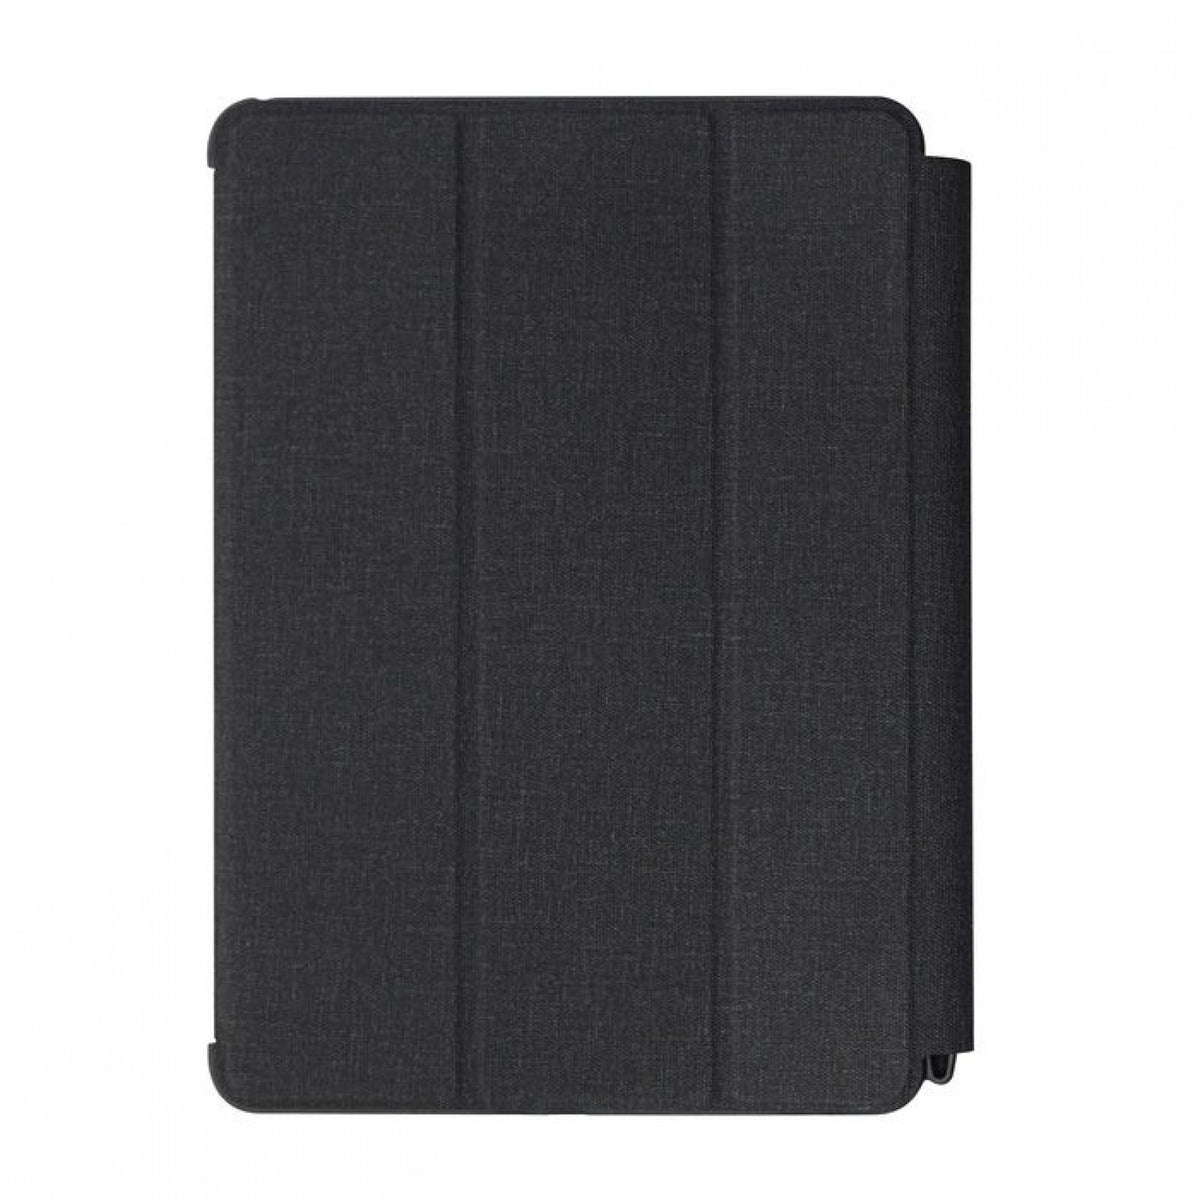 QDOS Muse Case for iPad 10.2-inch - Space Grey